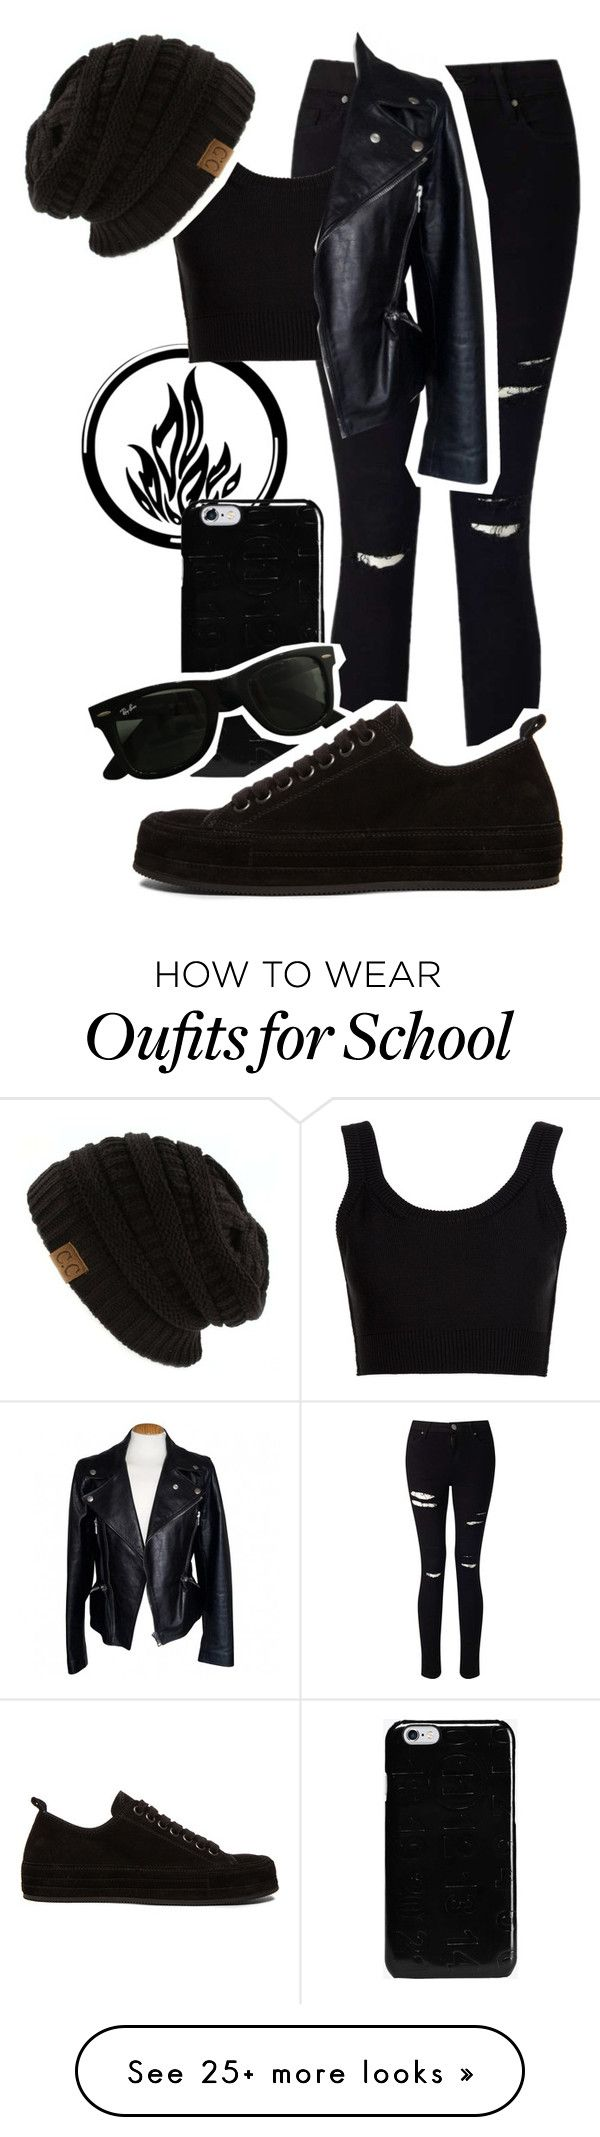 """""""Dauntless - Back to school"""" by hipstermonkey12 on Polyvore featuring Miss Selfridge, Calvin Klein Collection, Maison Margiela, Alexander McQueen, Ray-Ban and Ann Demeulemeester"""